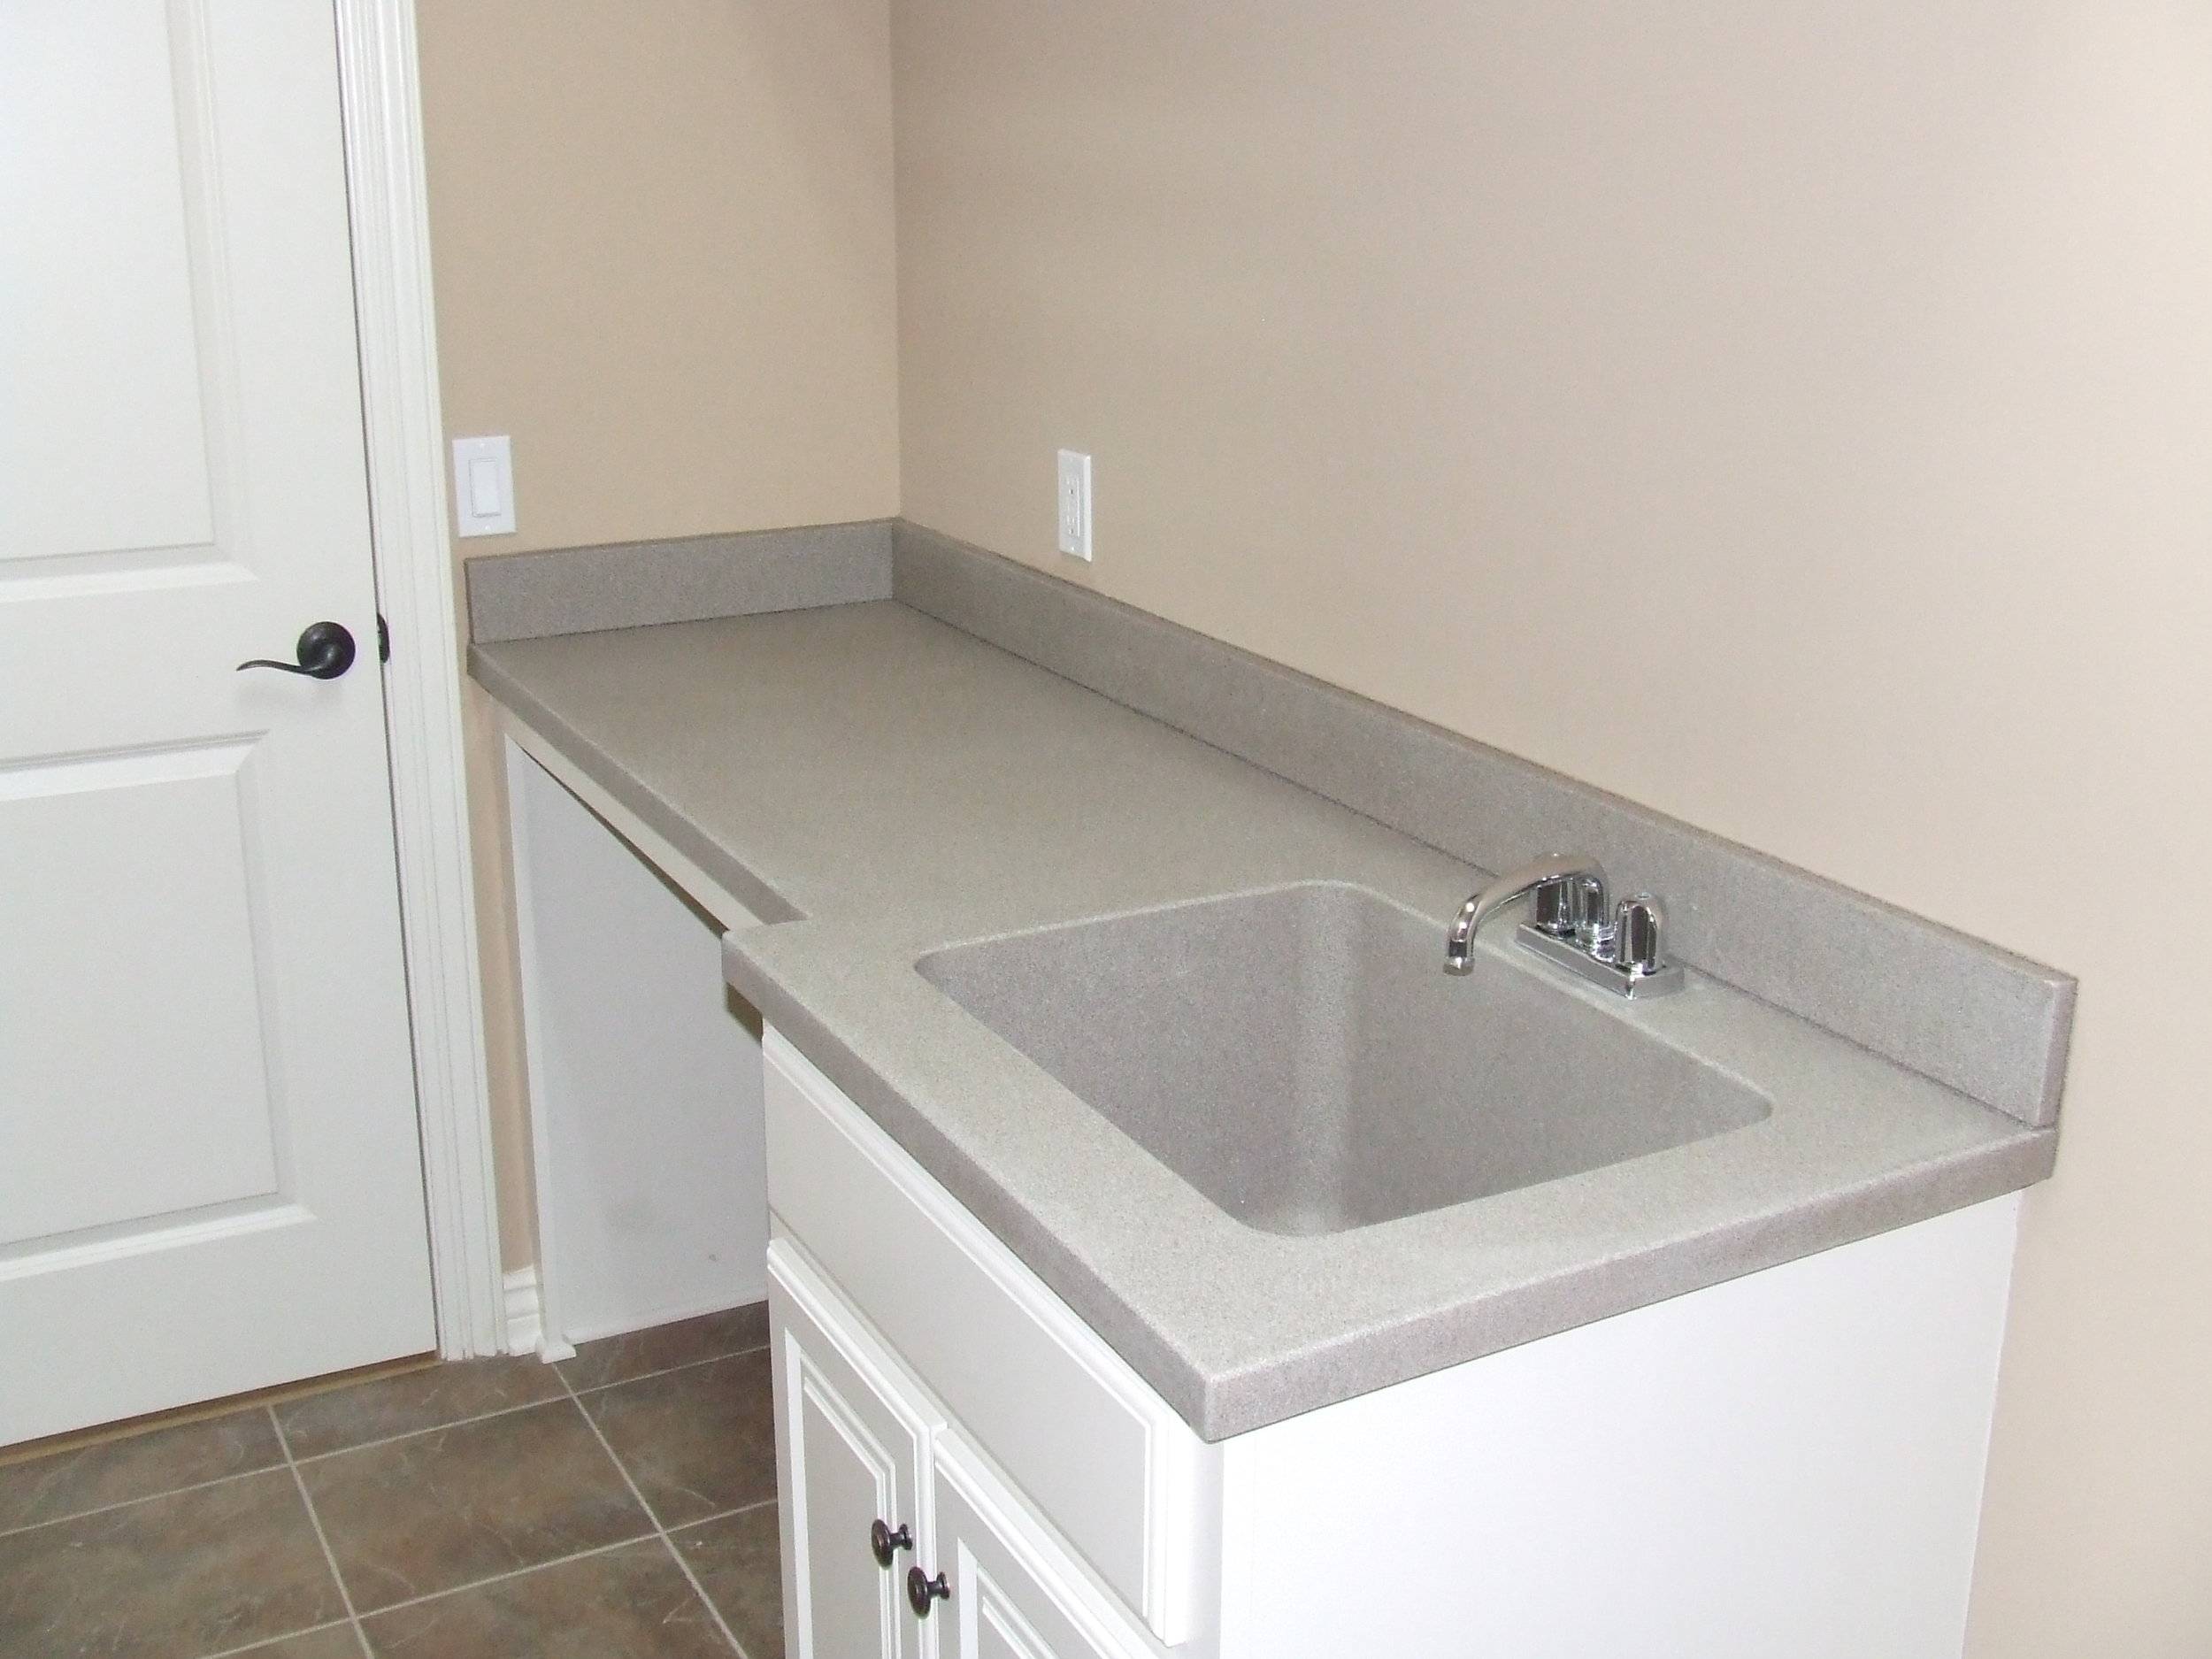 laundry-tub-w.-counter-space-2008.jpg